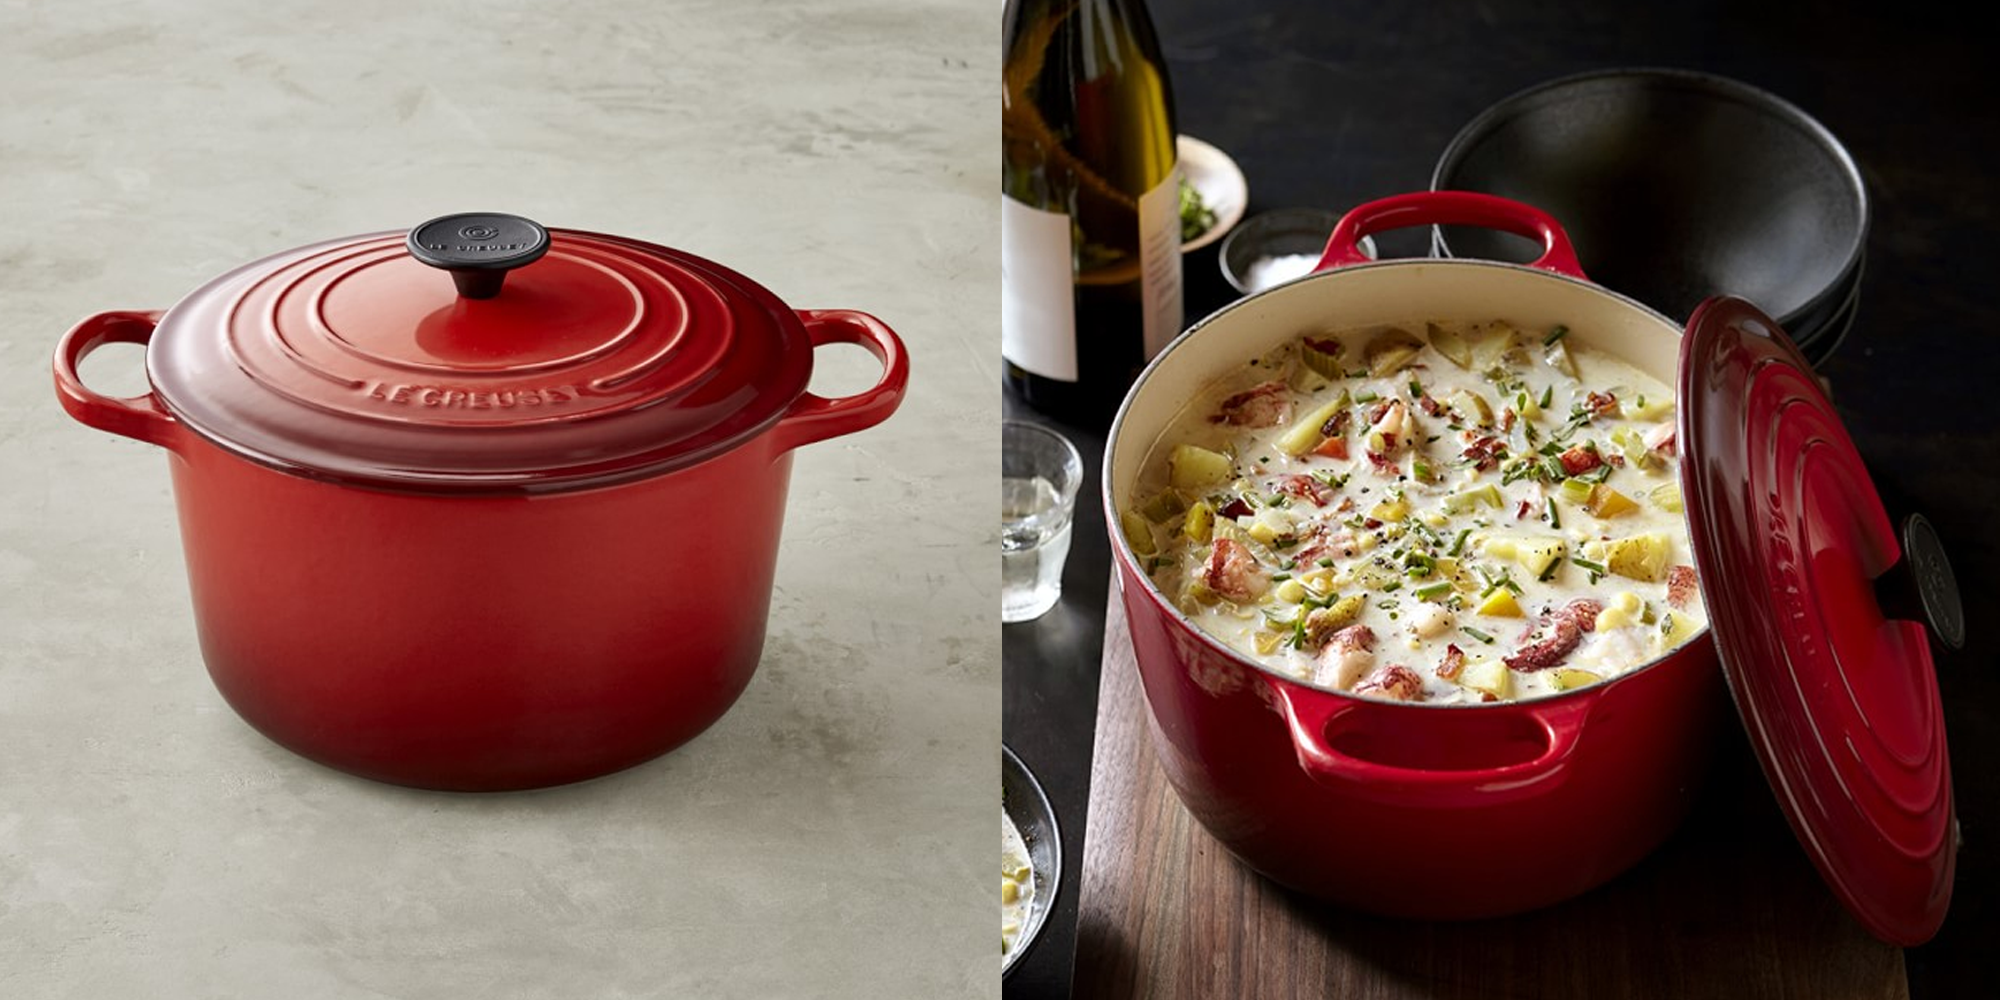 Williams Sonoma's Warehouse Sale Includes Deals on Le Creuset, Instant Pot, and More